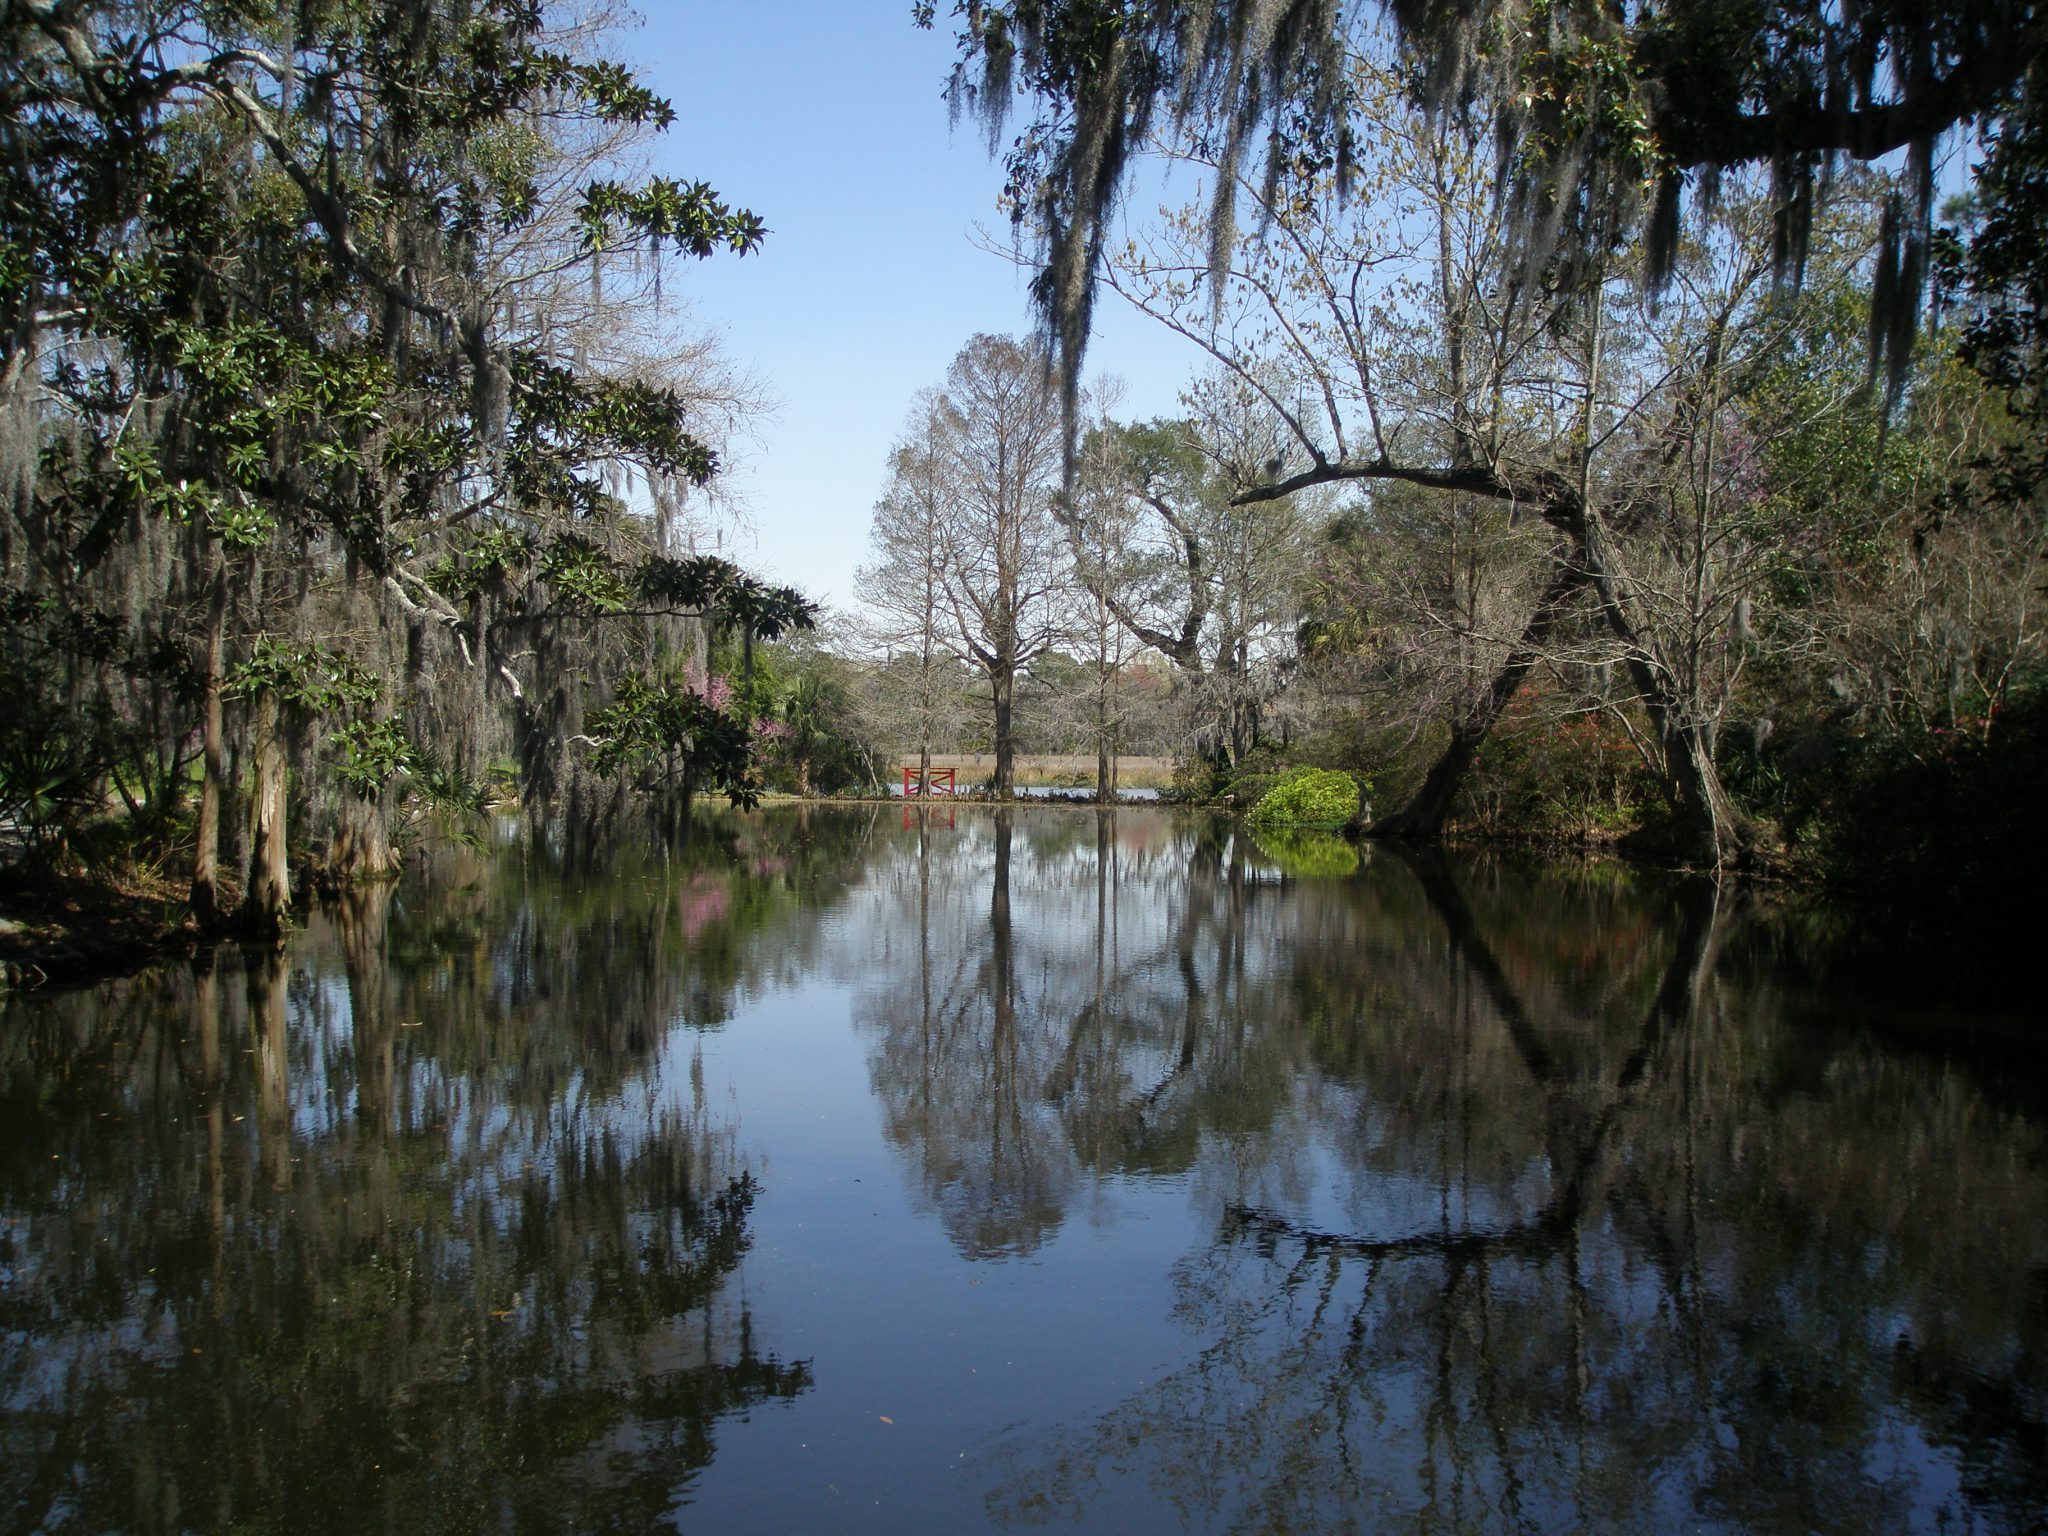 Beauty Mirrored: tranquil waters reflect cypress trees and a red gate, alongside the Ashley River.